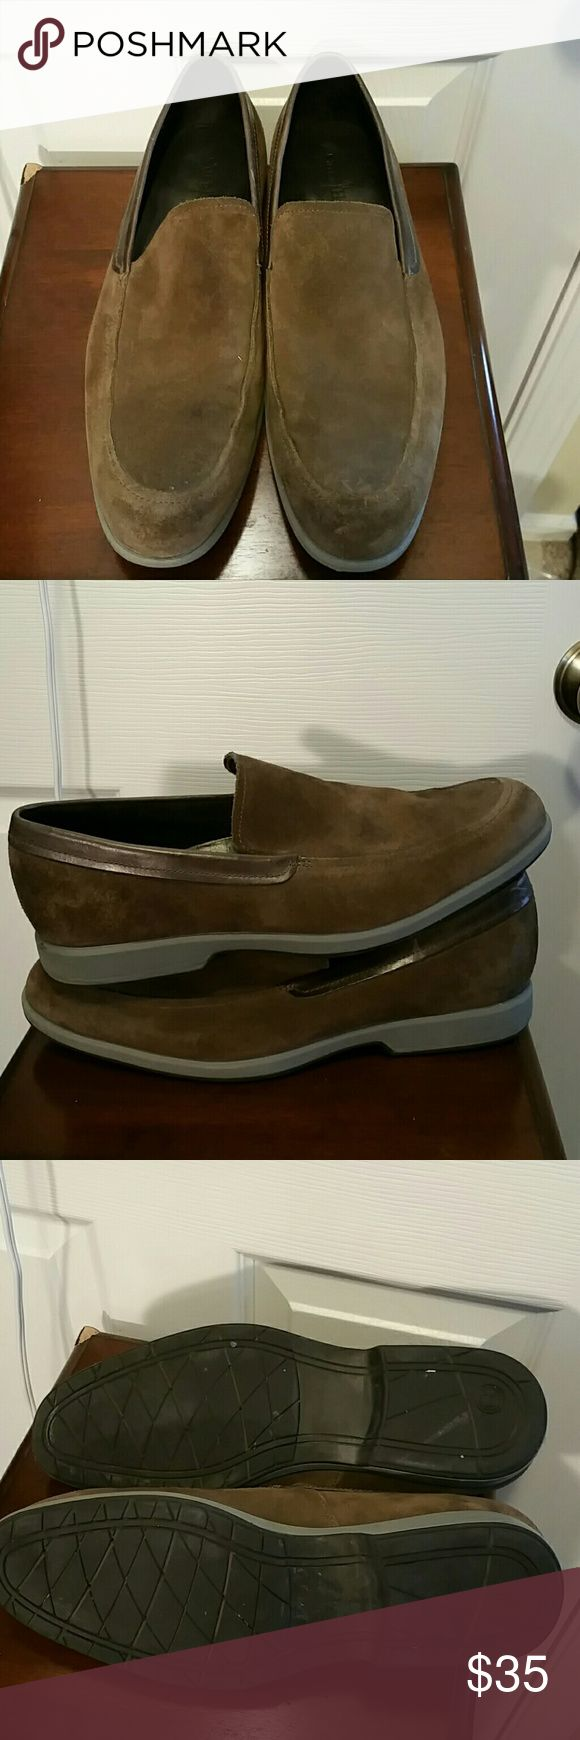 Men's Cole Hann Slip-Ons Great condition! Has some scuffs but nothing awful. Picture is included    Leather upper Cole Haan Shoes Loafers & Slip-Ons